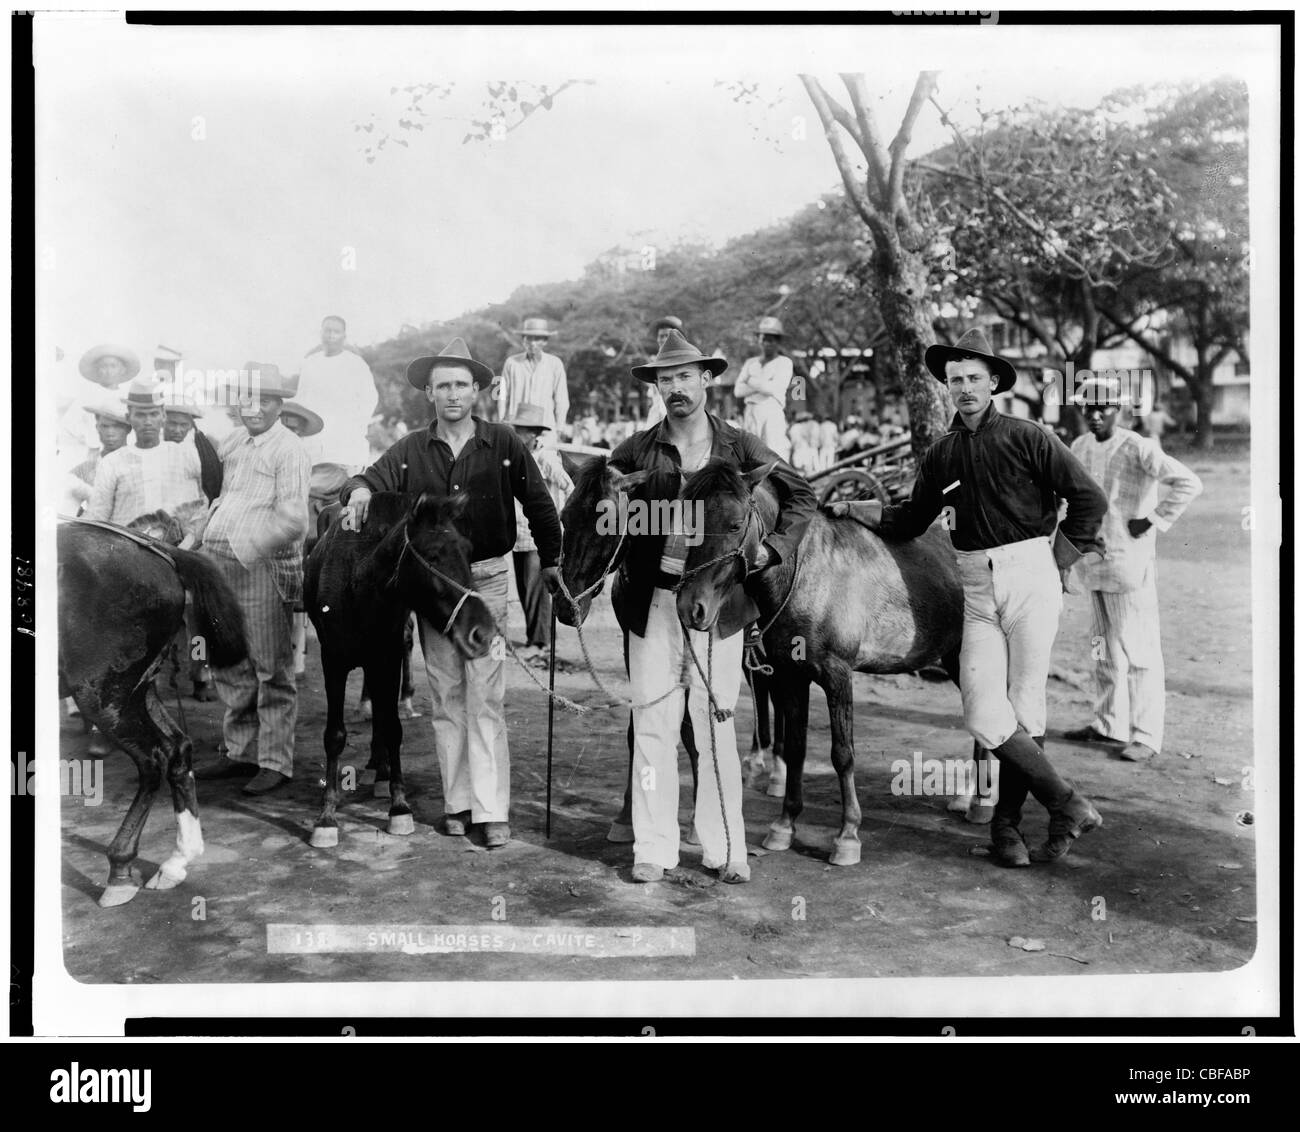 Three American soldiers(?), with small horses, and several Filipino men, Cavite, Philippine Islands. - Stock Image